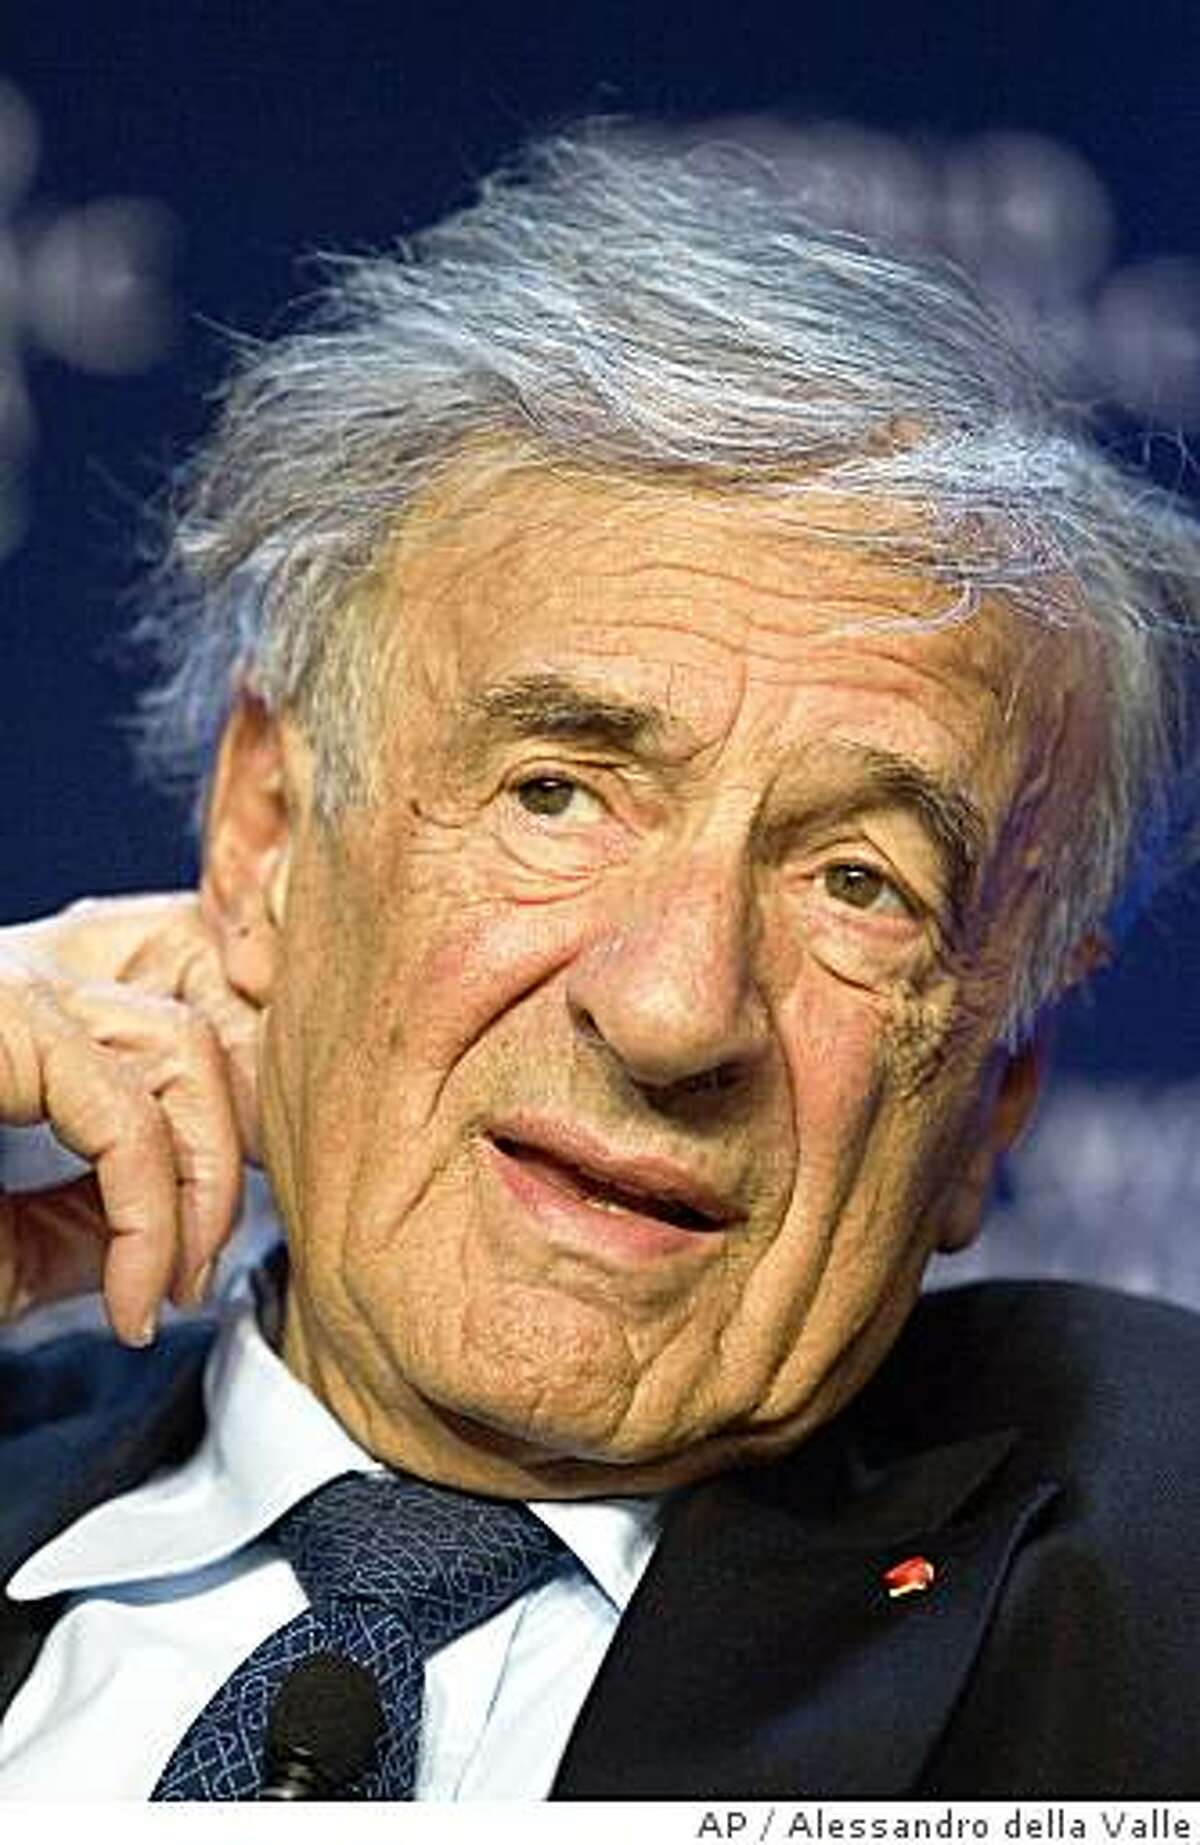 ** FILE ** In this Sunday Jan. 27, 2008 picture, Boston University Professor Elie Wiesel prepares for the final plenary session of the Annual Meeting of the World Economic Forum, WEF, in Davos, Switzerland. The Holocaust survivor and scholar told jurors in San Francisco Tuesday, July 8, 2008 that he was shocked to learn the man accused of accosting him was linked to a movement that denies millions of Jews were killed during World War II. (AP Photo/Keystone, Alessandro della Valle)